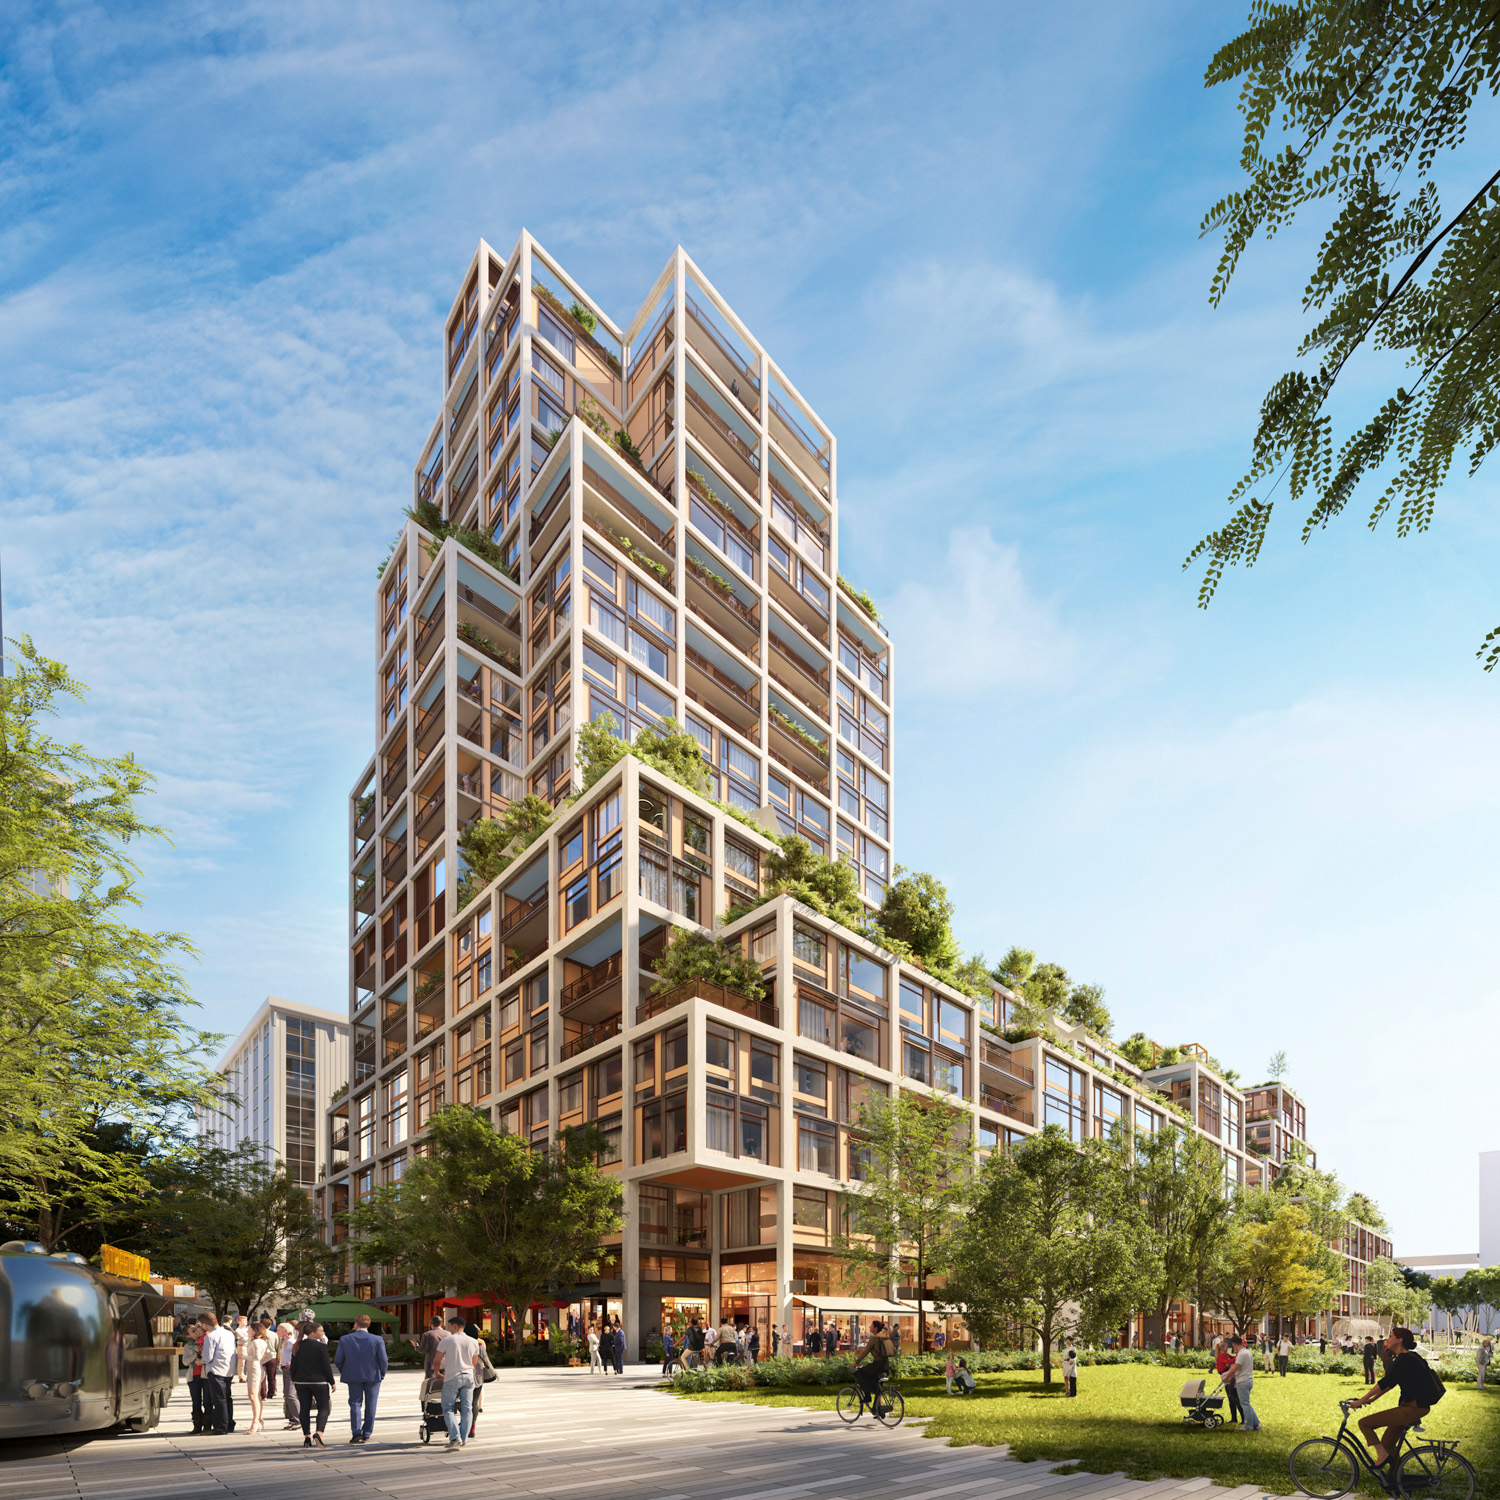 Updated design of Blocks 7A and 8 of the Potrero Power Station, design by Foster + Partners